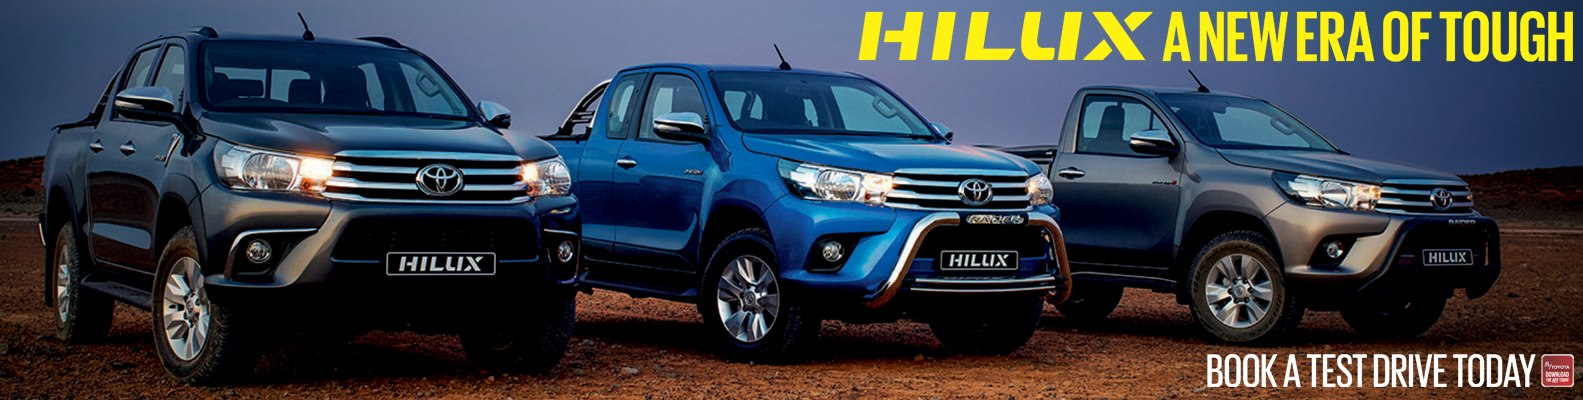 All New Hilux Randomiser